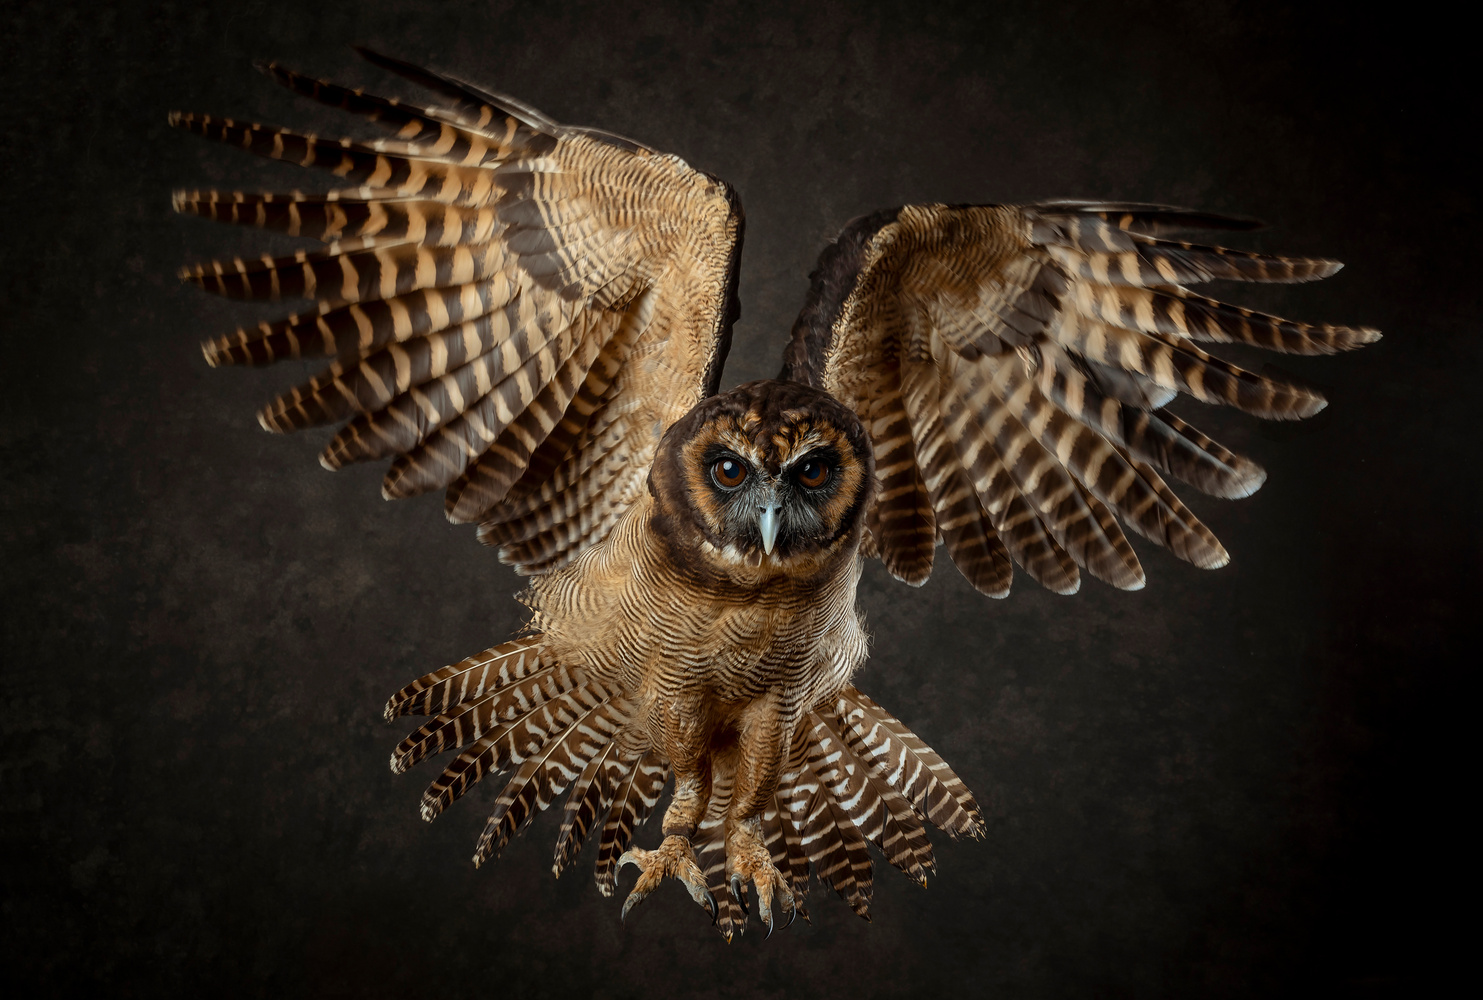 Owl in flight by Chris Doyle